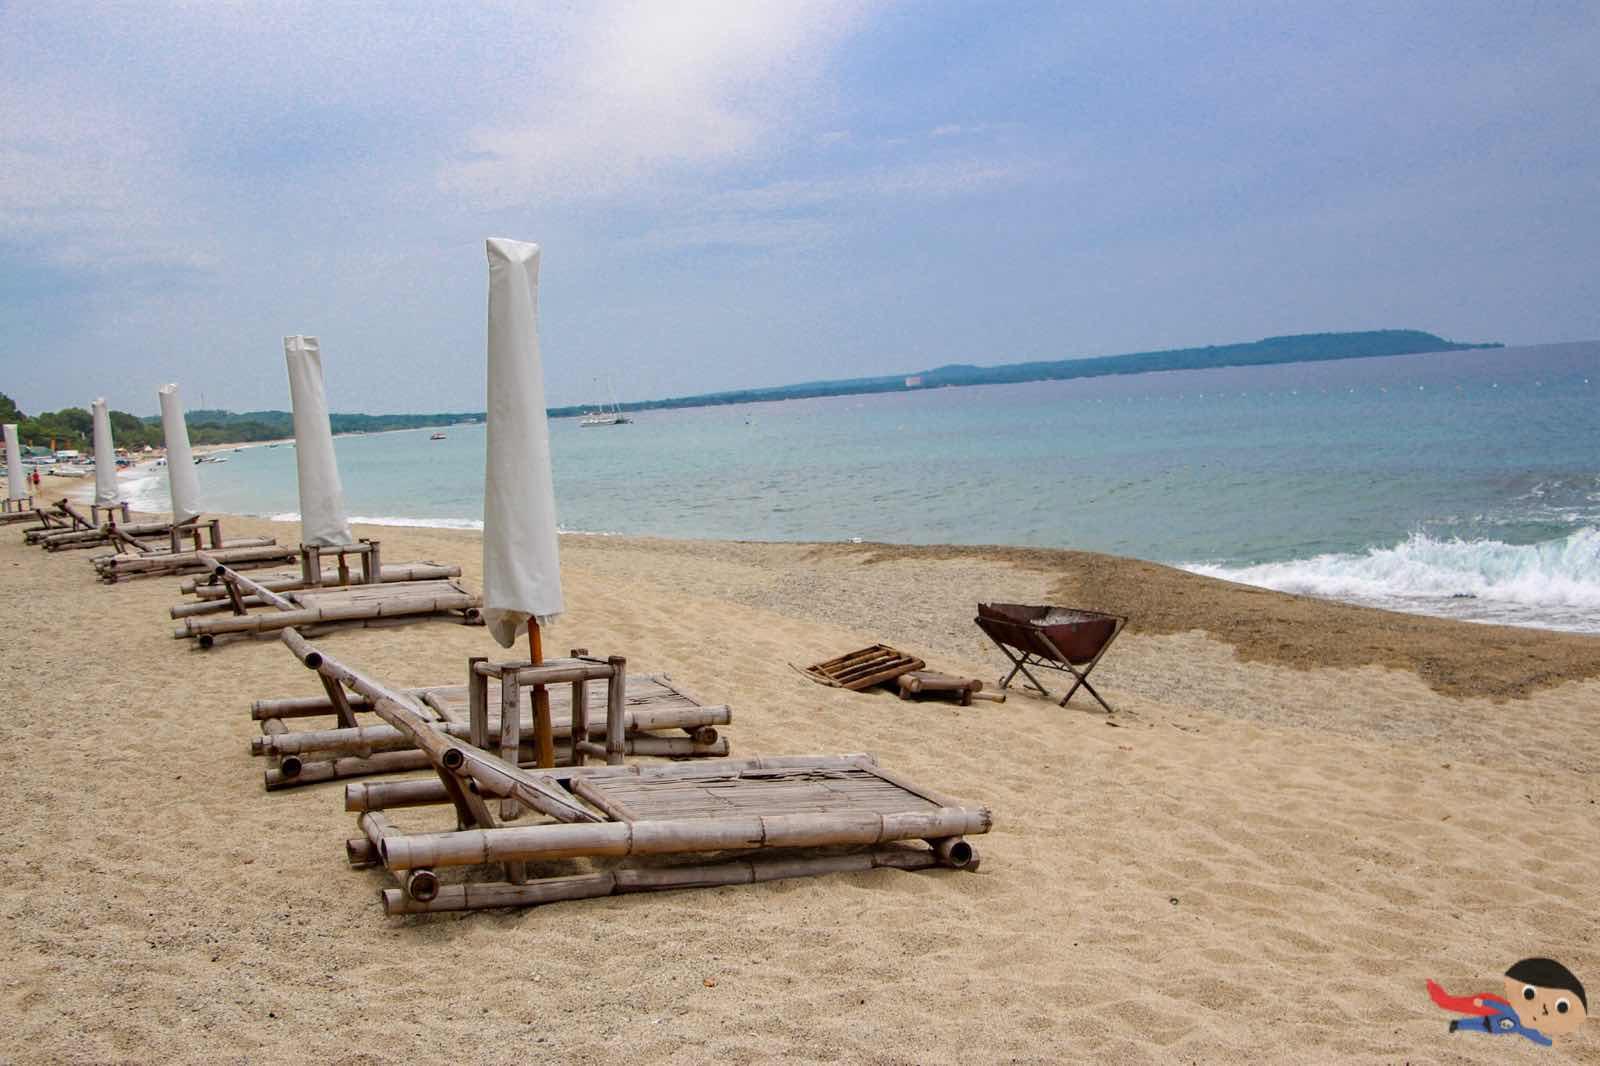 Relaxation in La Luz Beach Resort, Batangas